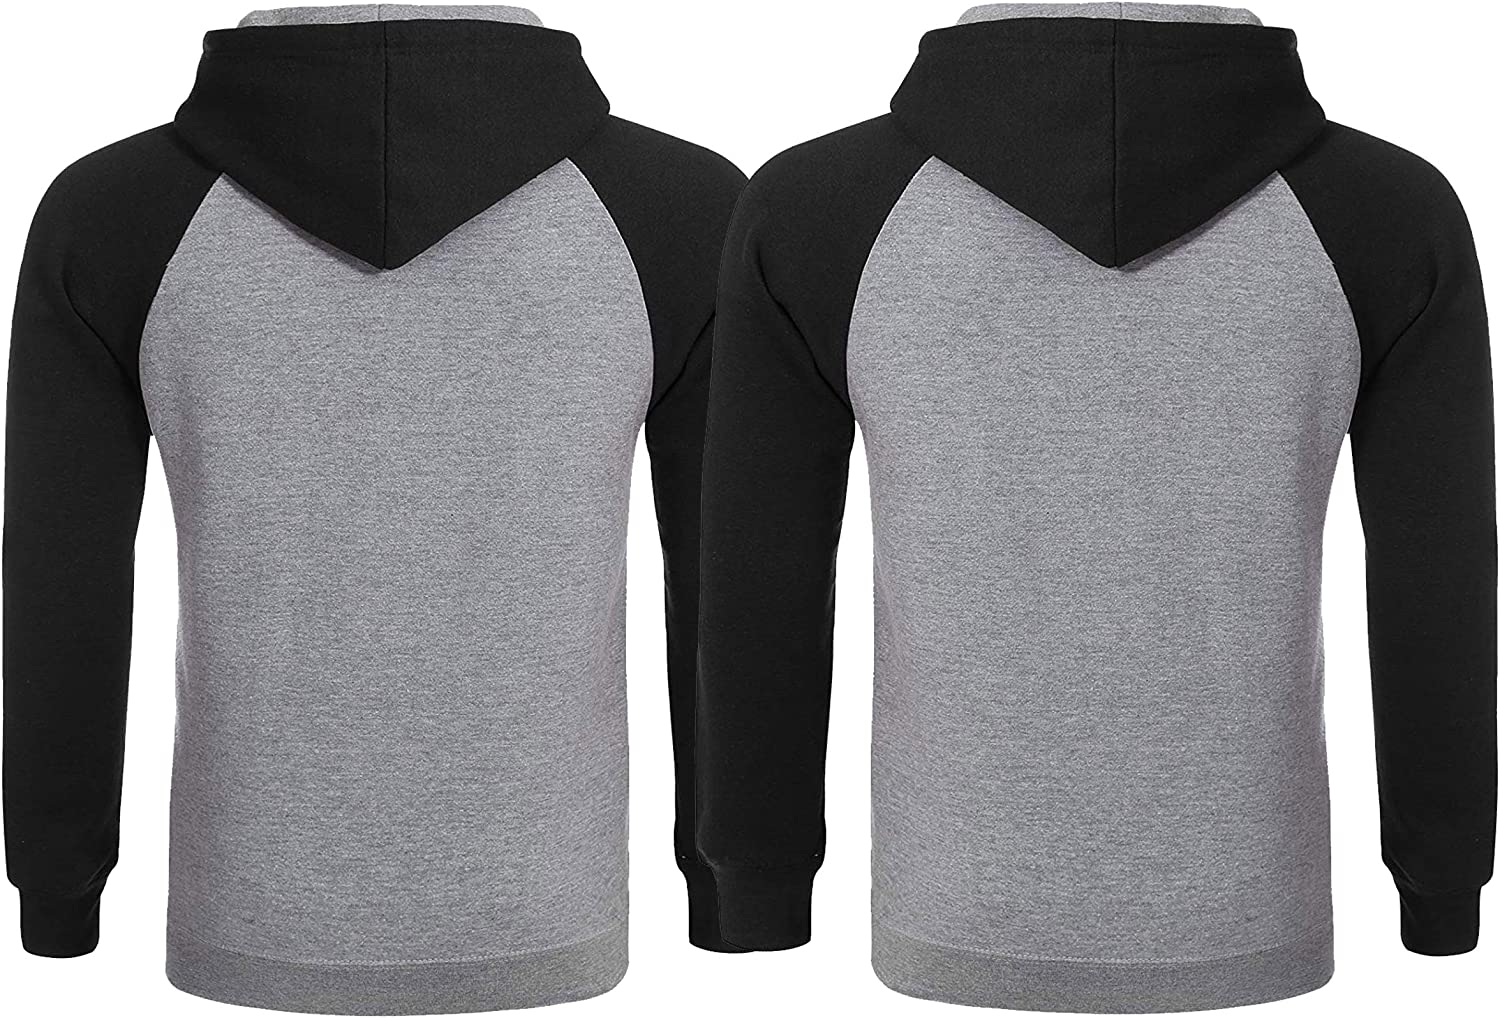 King and Queen Hoodies His and Hers Hoodies Soul Mate Matching Outfits for Couples